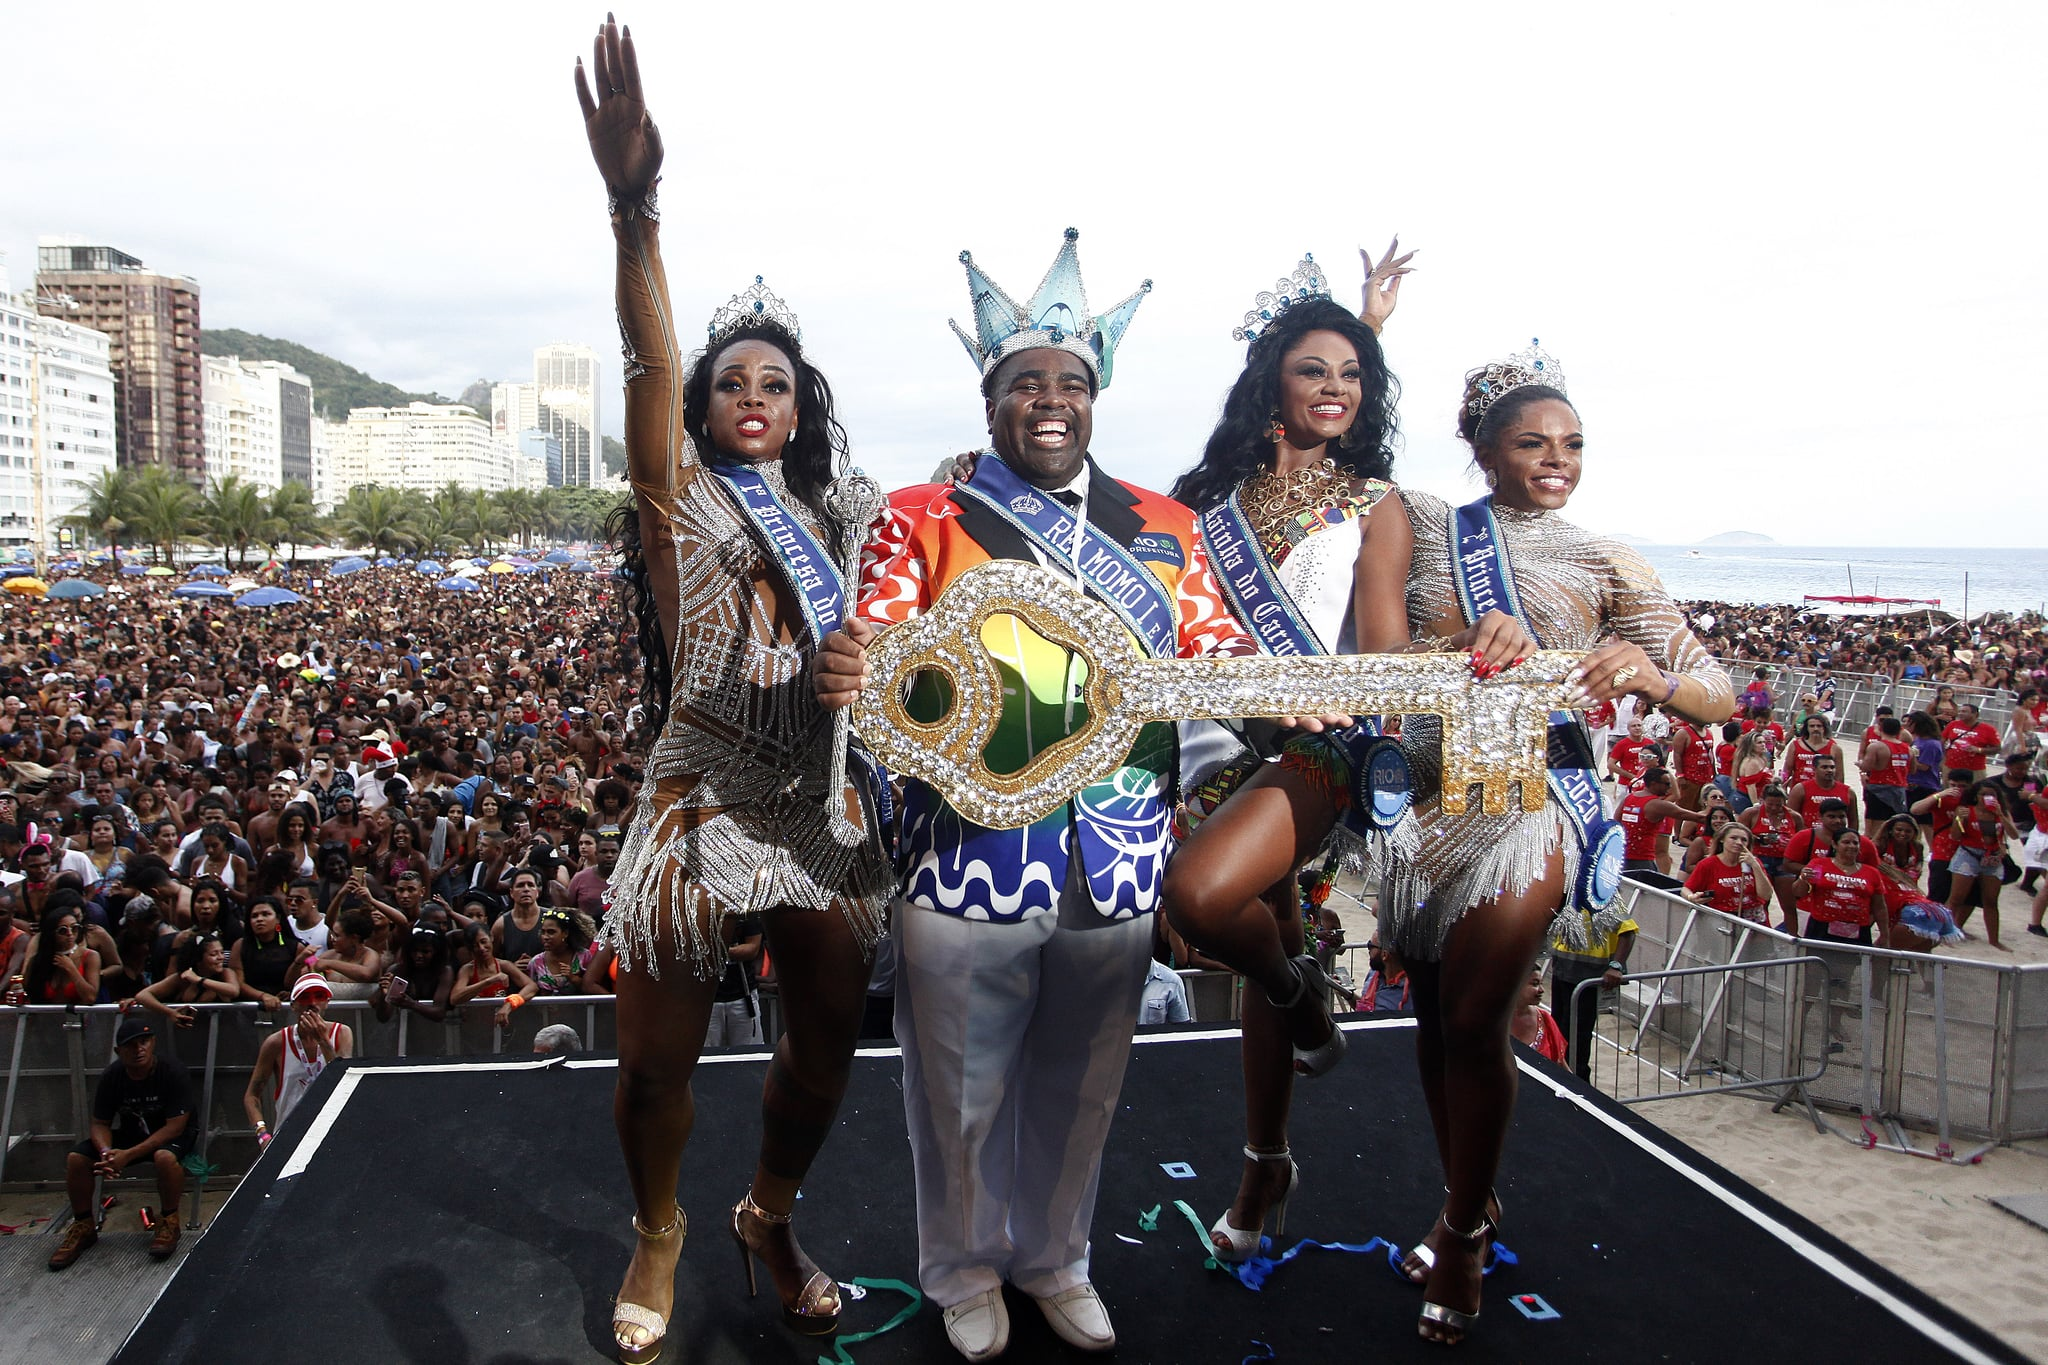 RIO DE JANEIRO, BRAZIL - JANUARY 12: Djeferson Mendes da Silva, King Momo elected and Camila Aparecida da Silva, Rio Carnival Queen elected (in the center) receive the Key of the city during the Crown ceremony. The city hall of Rio de Janeiro celebrated this Sunday afternoon at Copacabana beach along with